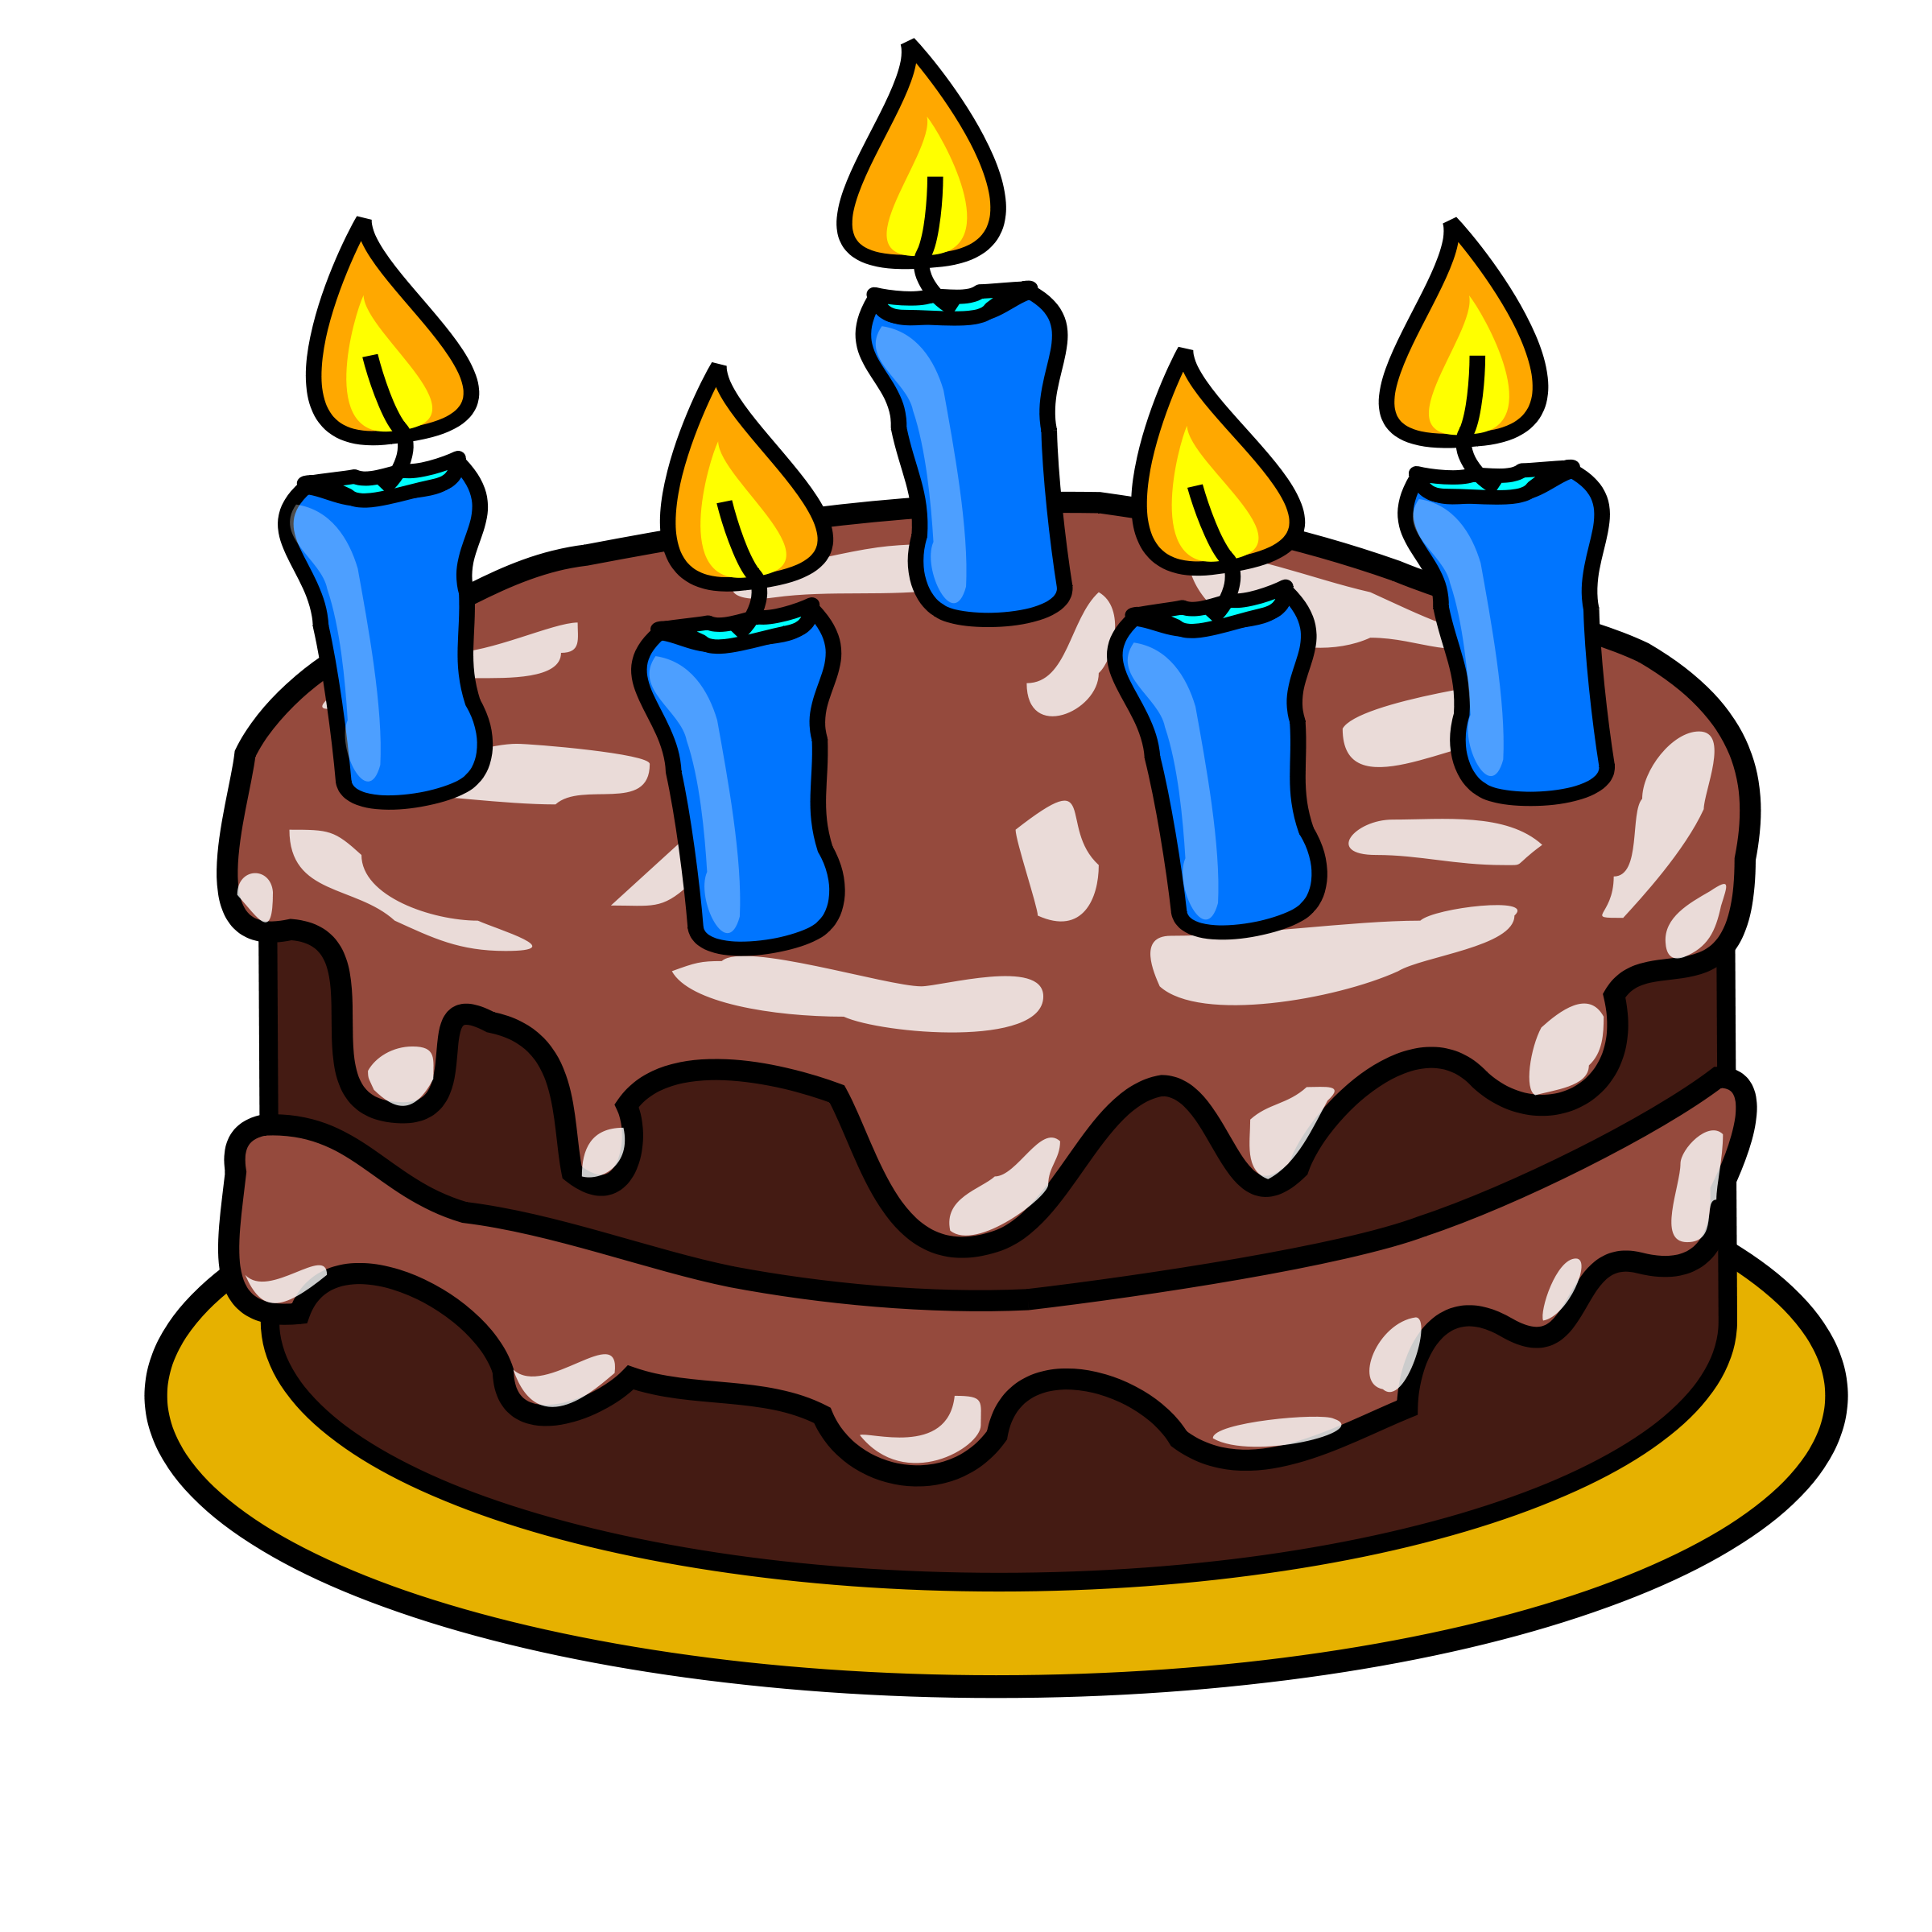 Free Birthday Cake Clip Art-free birthday cake clip art-0